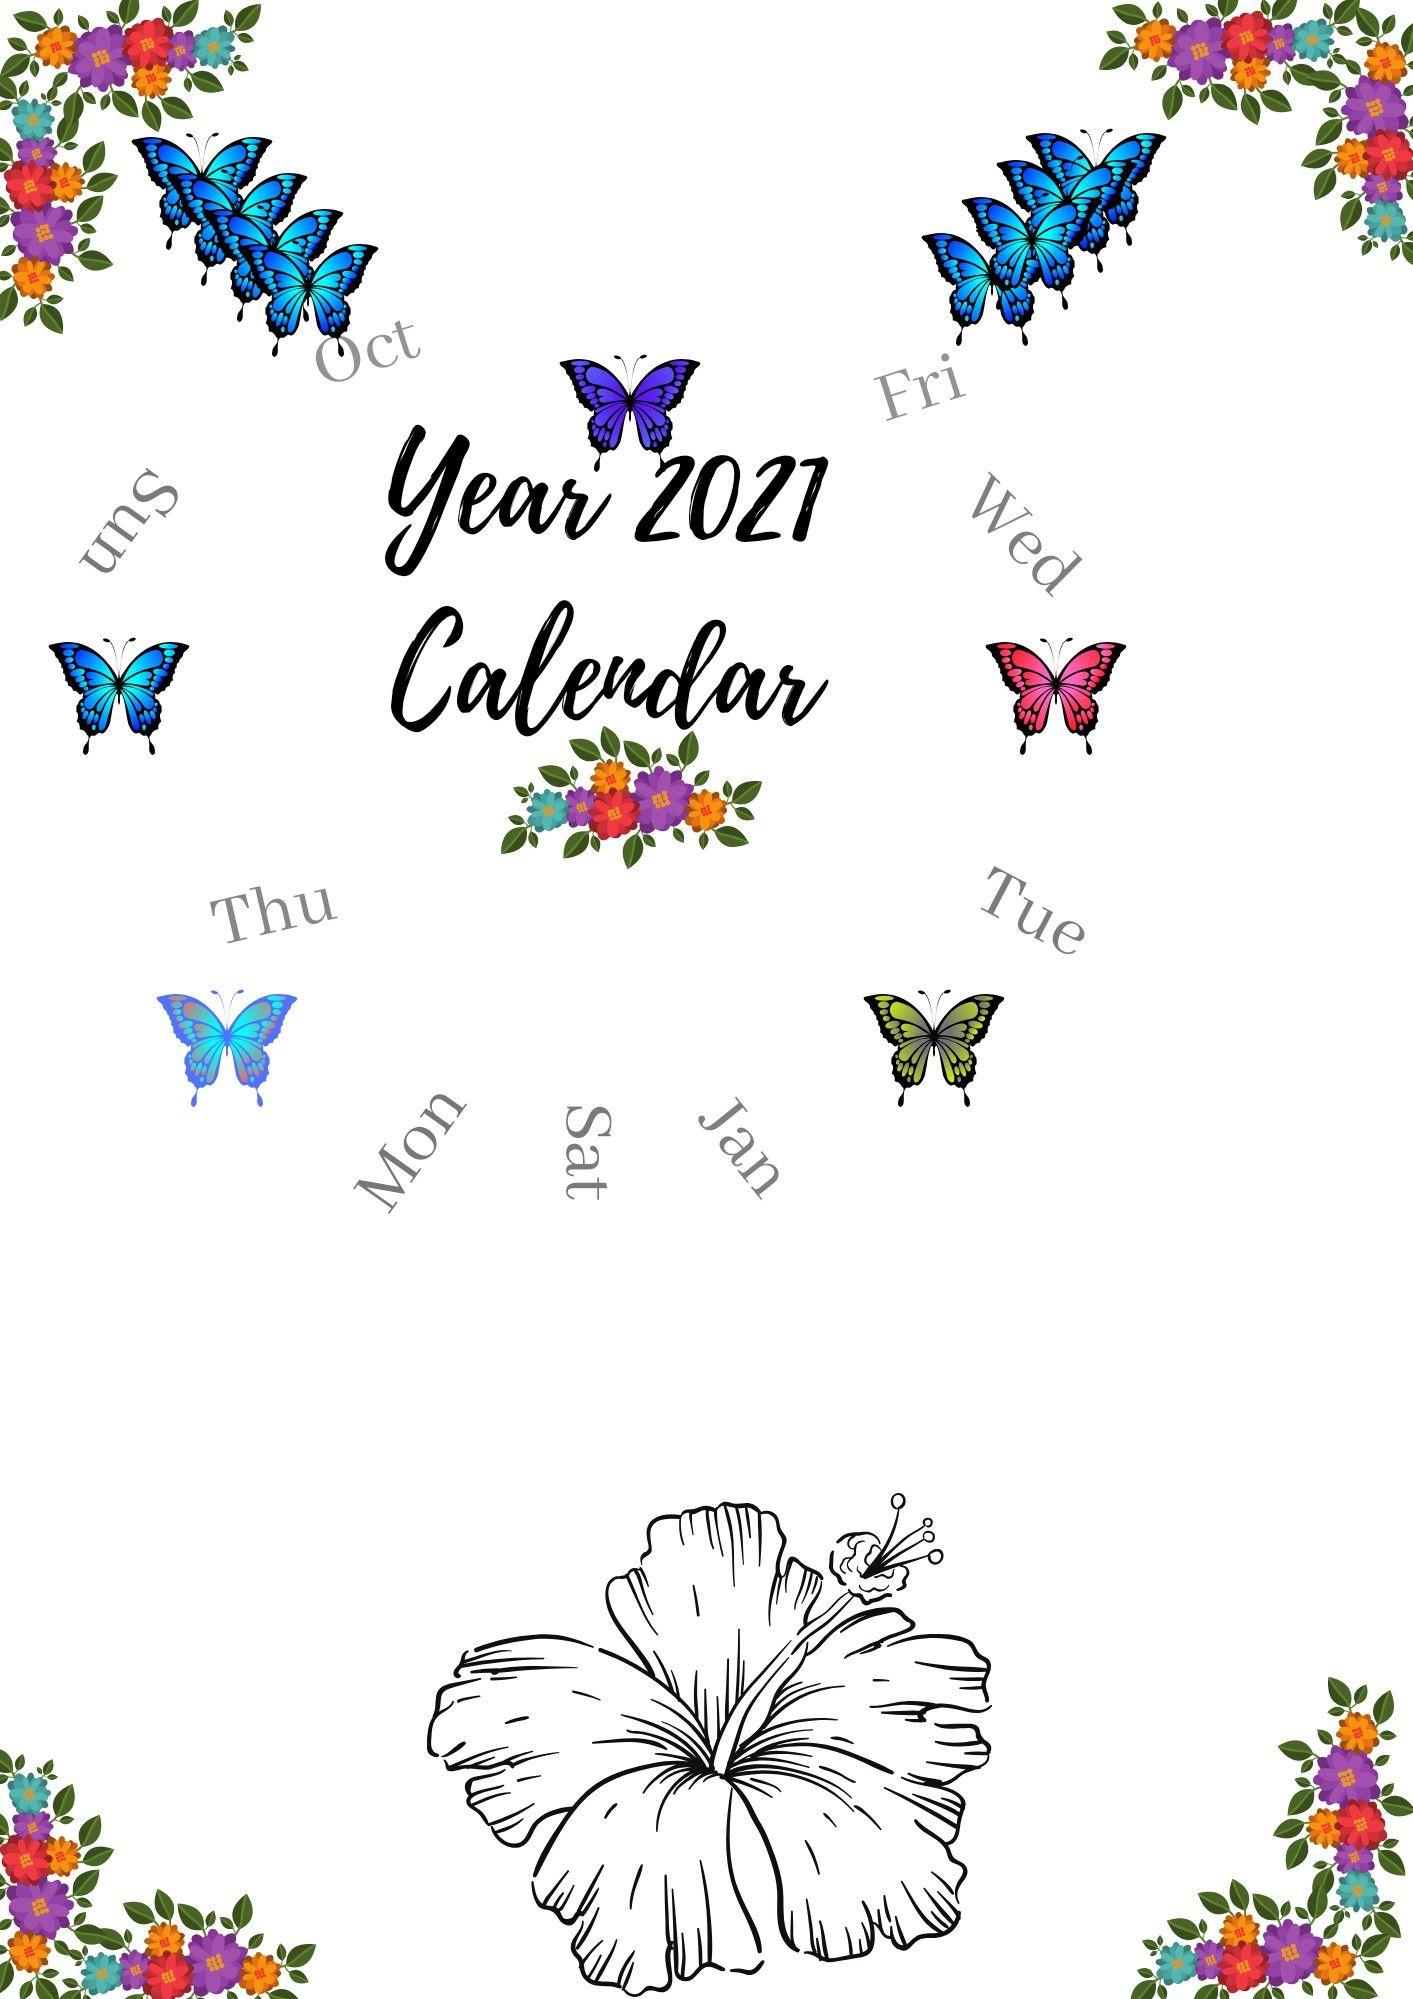 Butterflies And Flowers Themed 2021 Calendar In 2020 | 2021